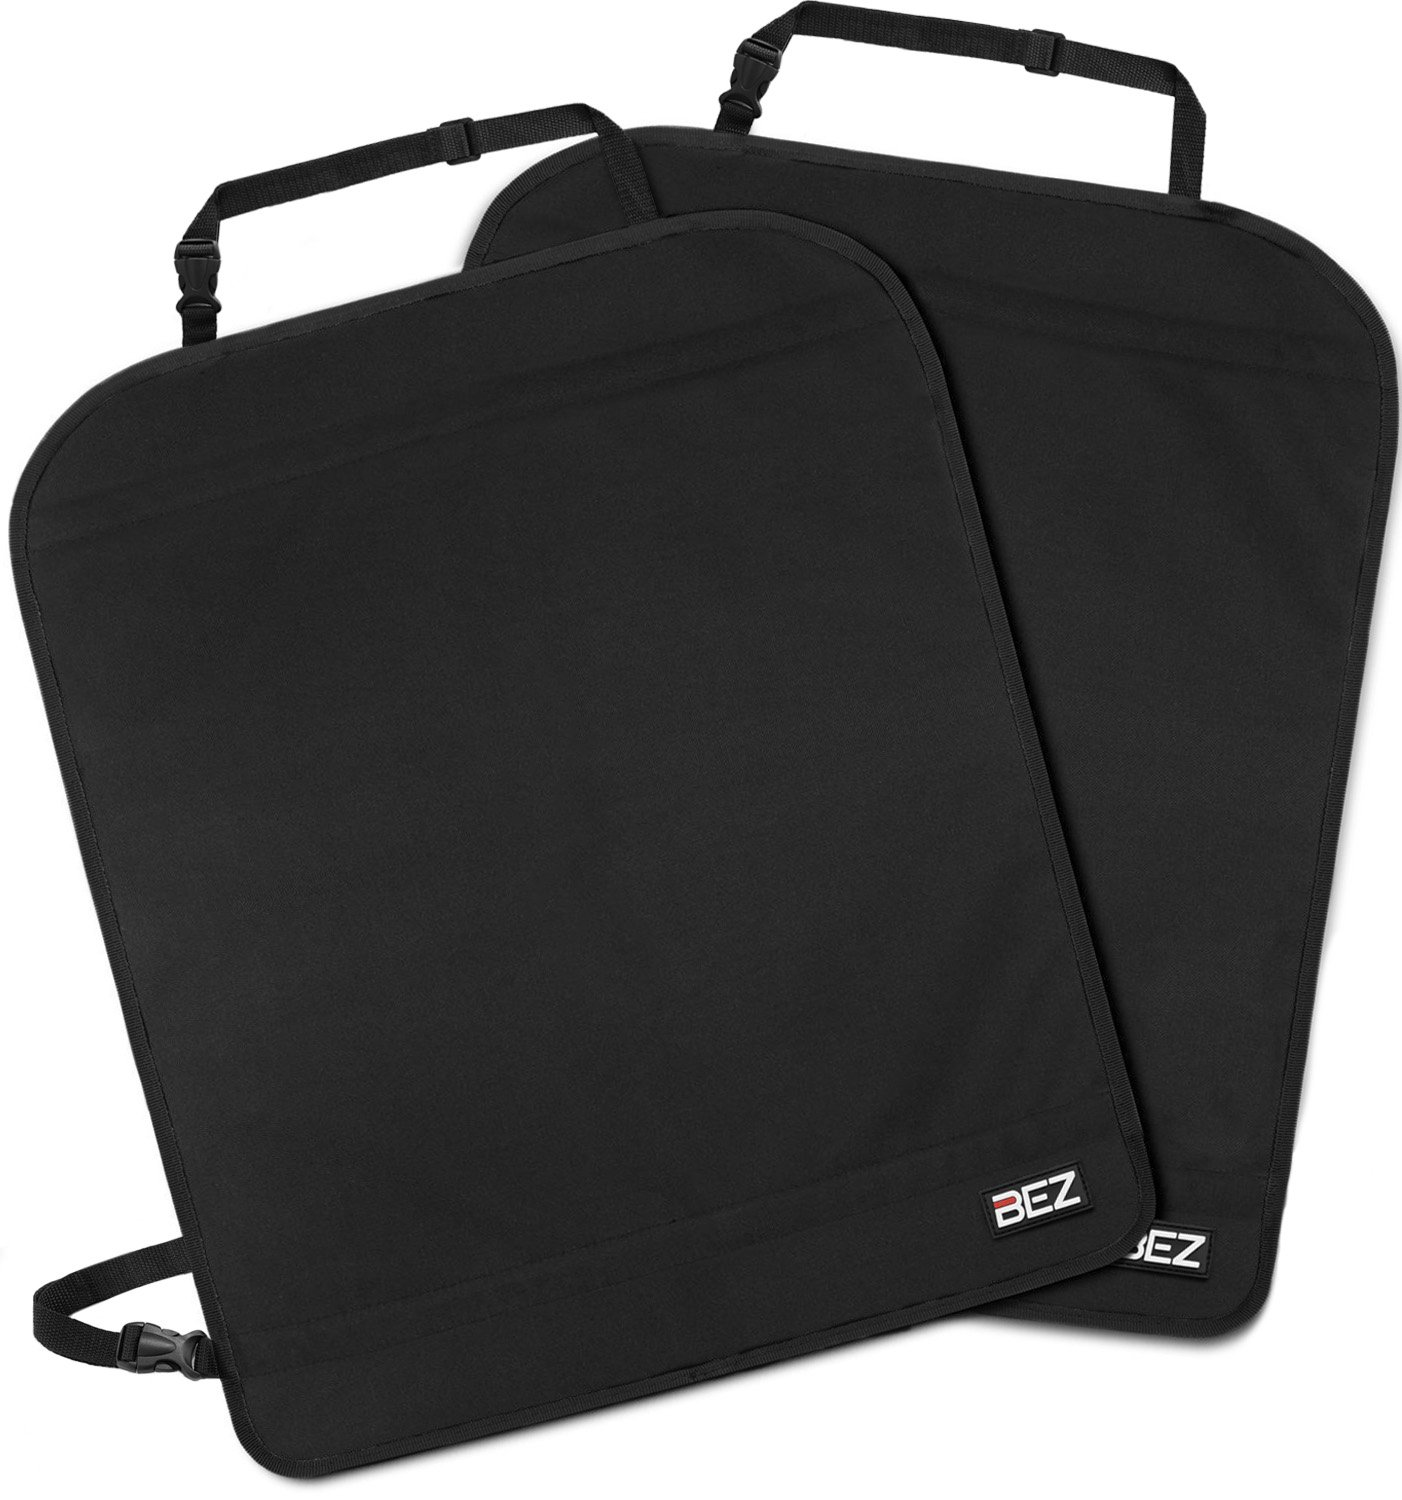 BEZ Kick Mats Kids Car Seat Back Protector Cover [2 Packs], 600D Material, Black Number One International